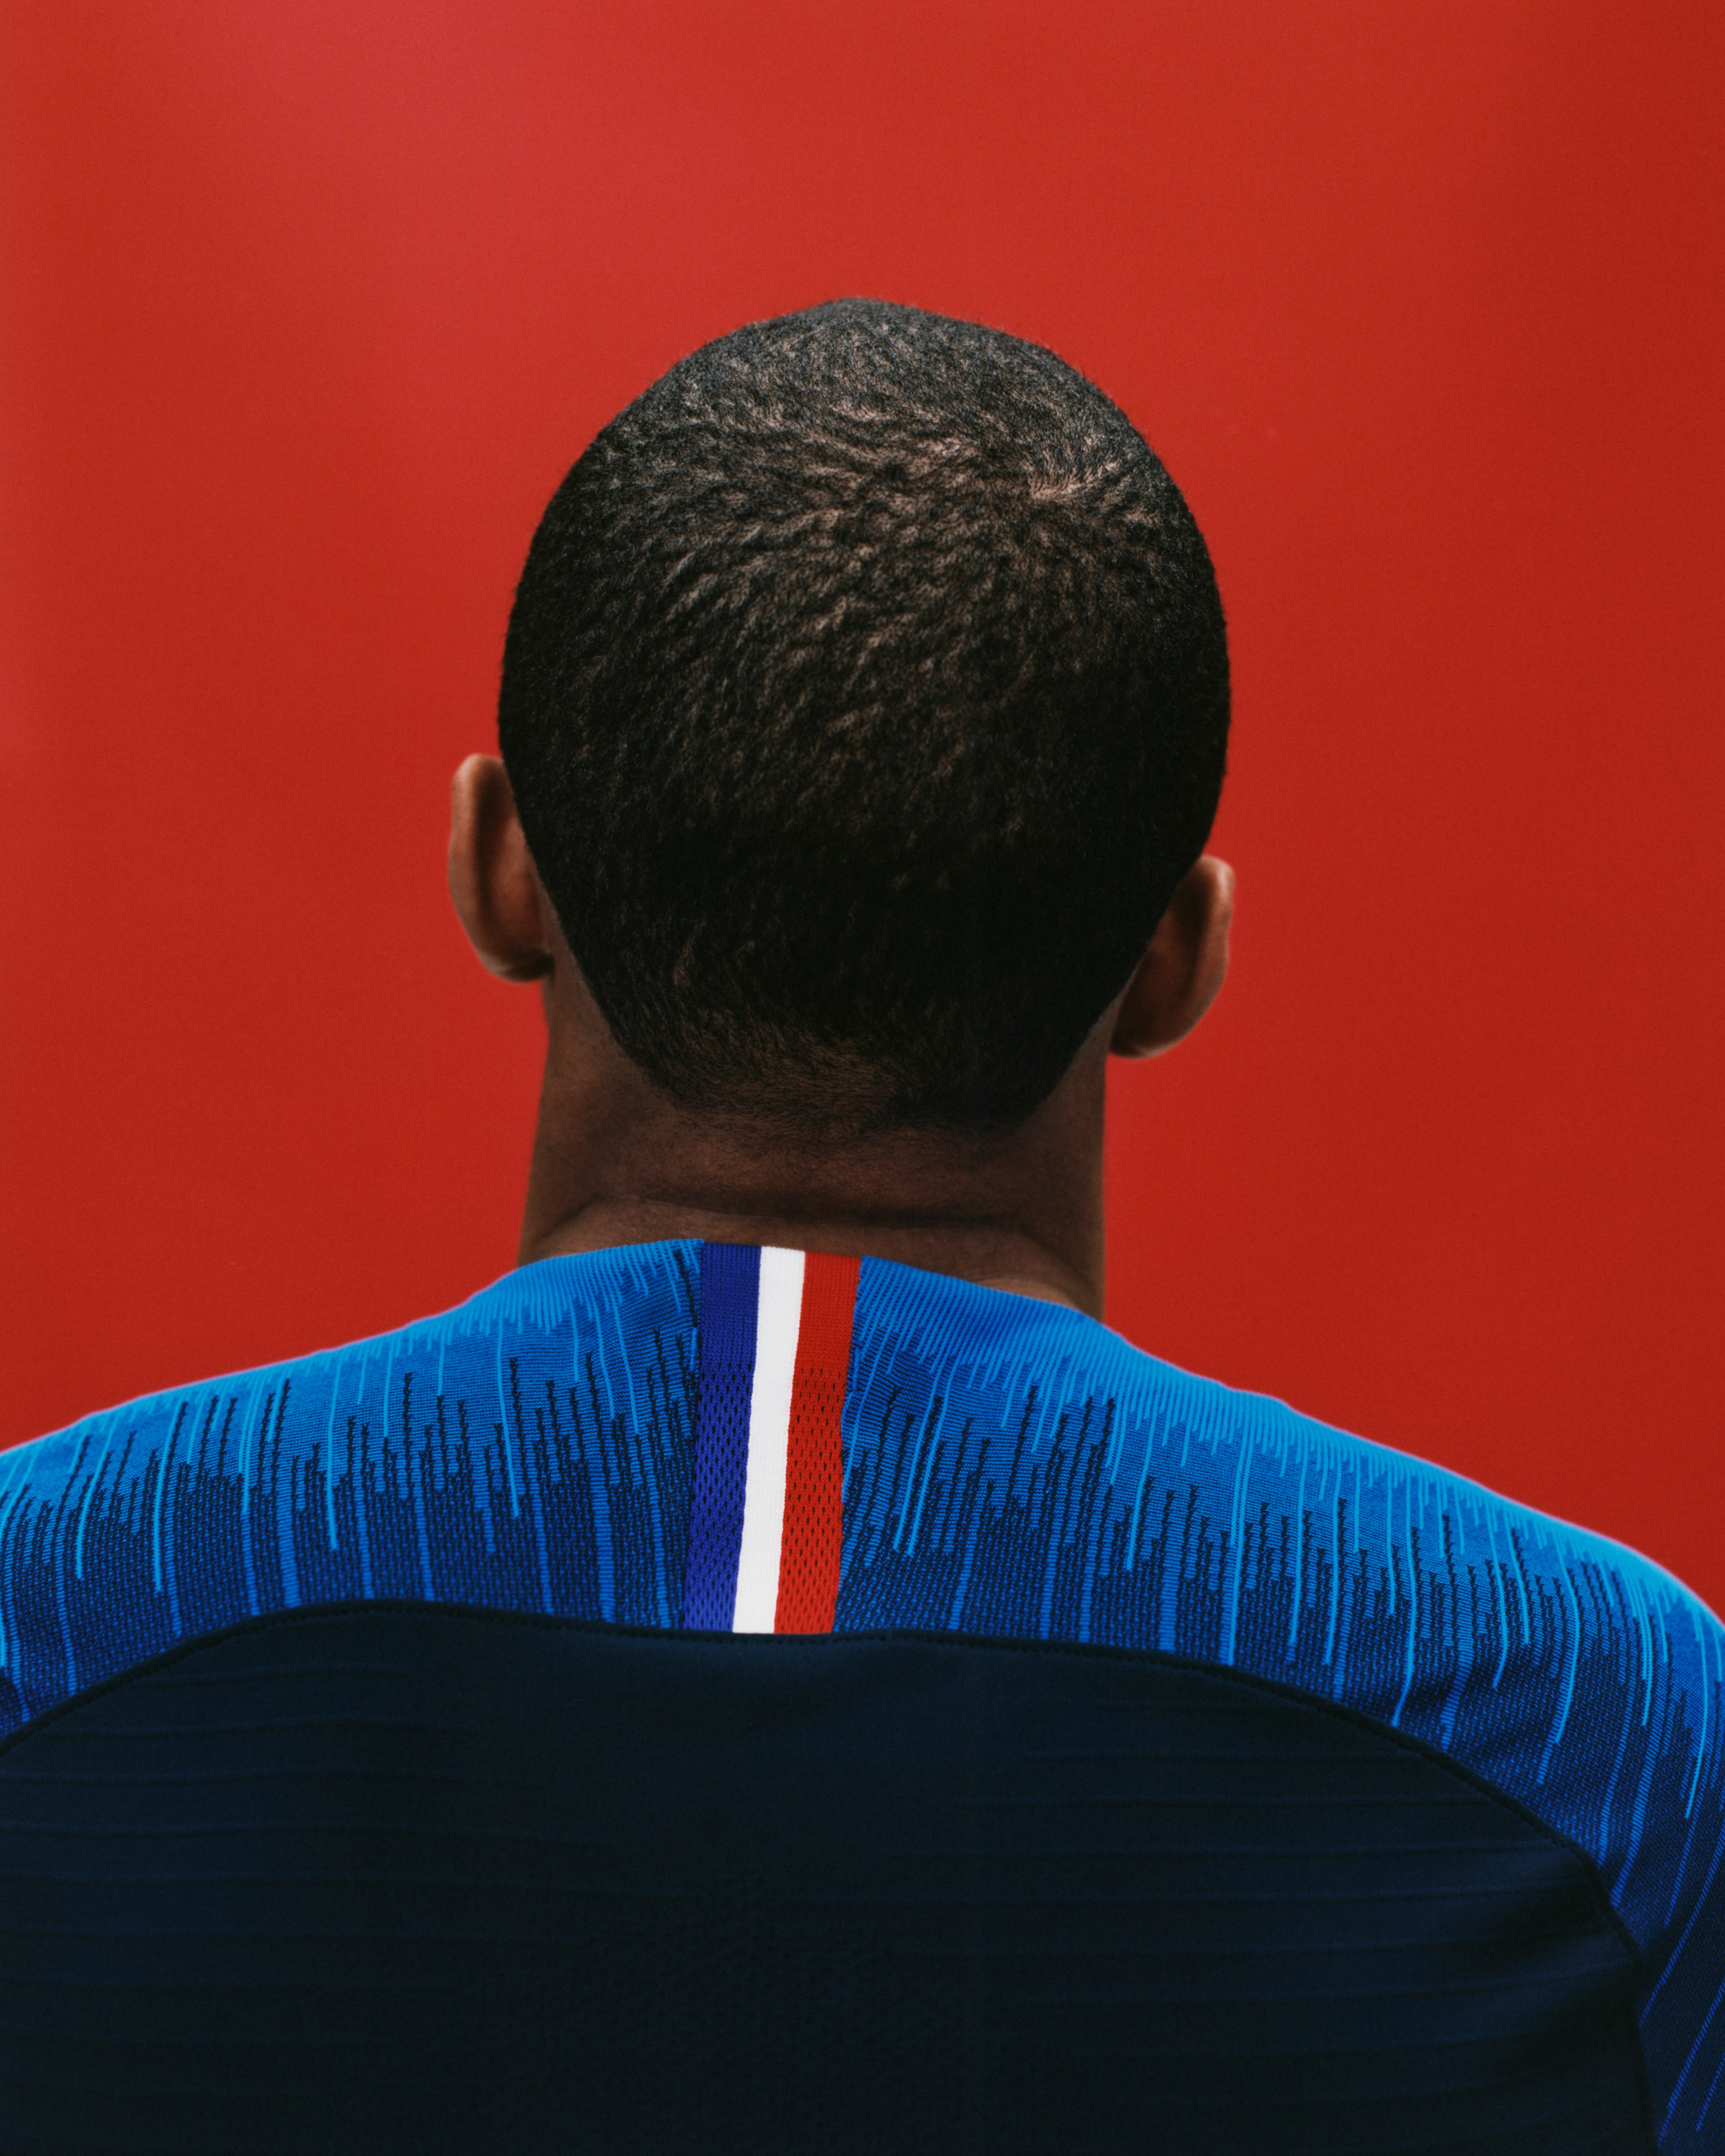 bdfc589090b Nike unveils World Cup 2018 kits for France that give the tricolore a